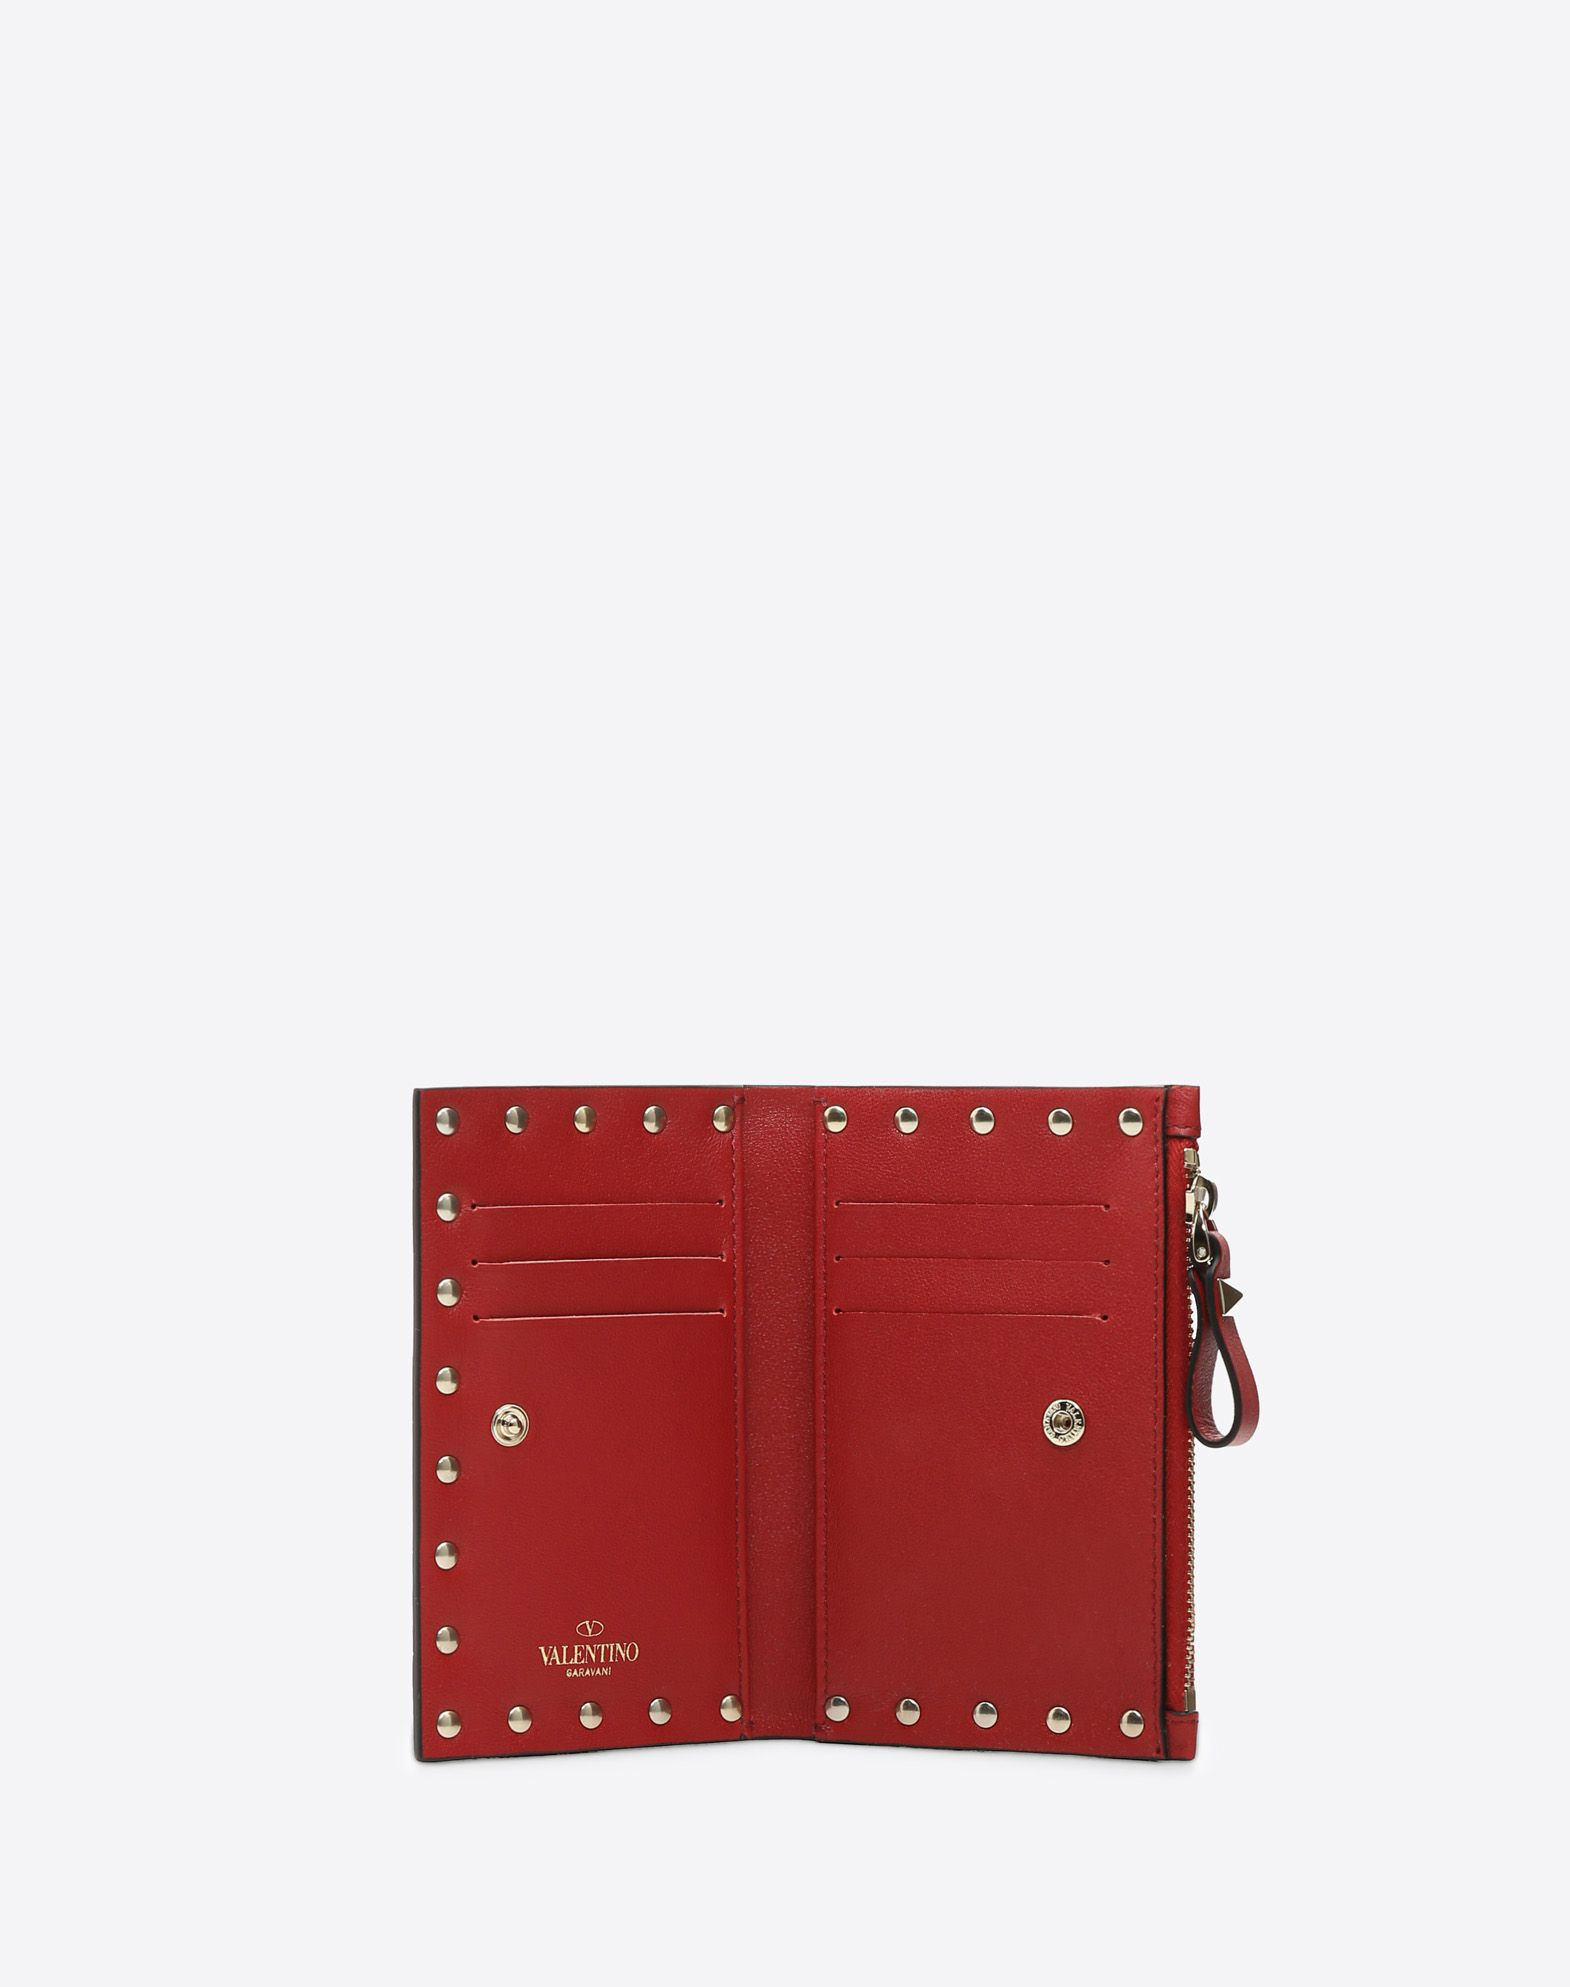 VALENTINO Studs Logo Solid color Snap button fastening External pocket Internal card slots  46468467re